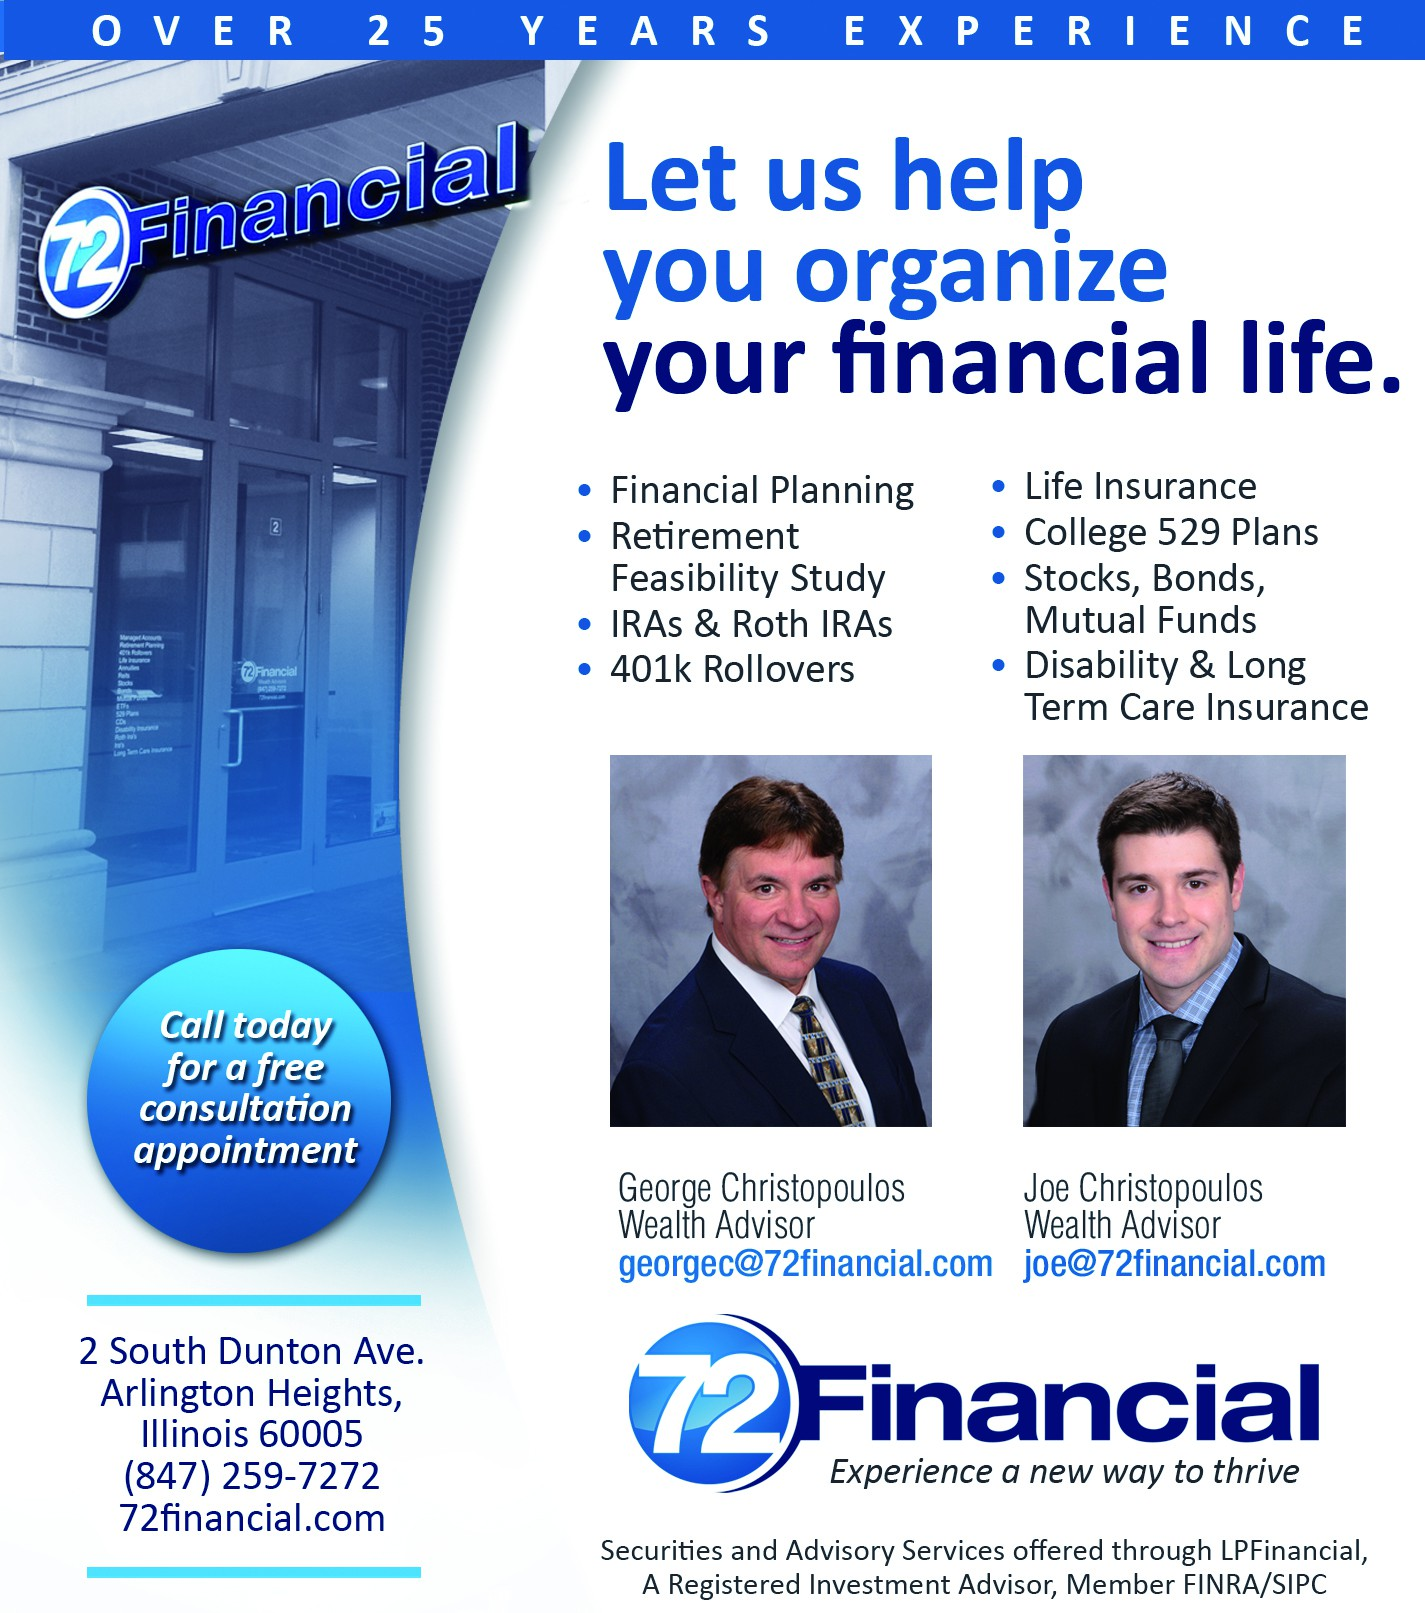 72 Financial needs a new print ad!